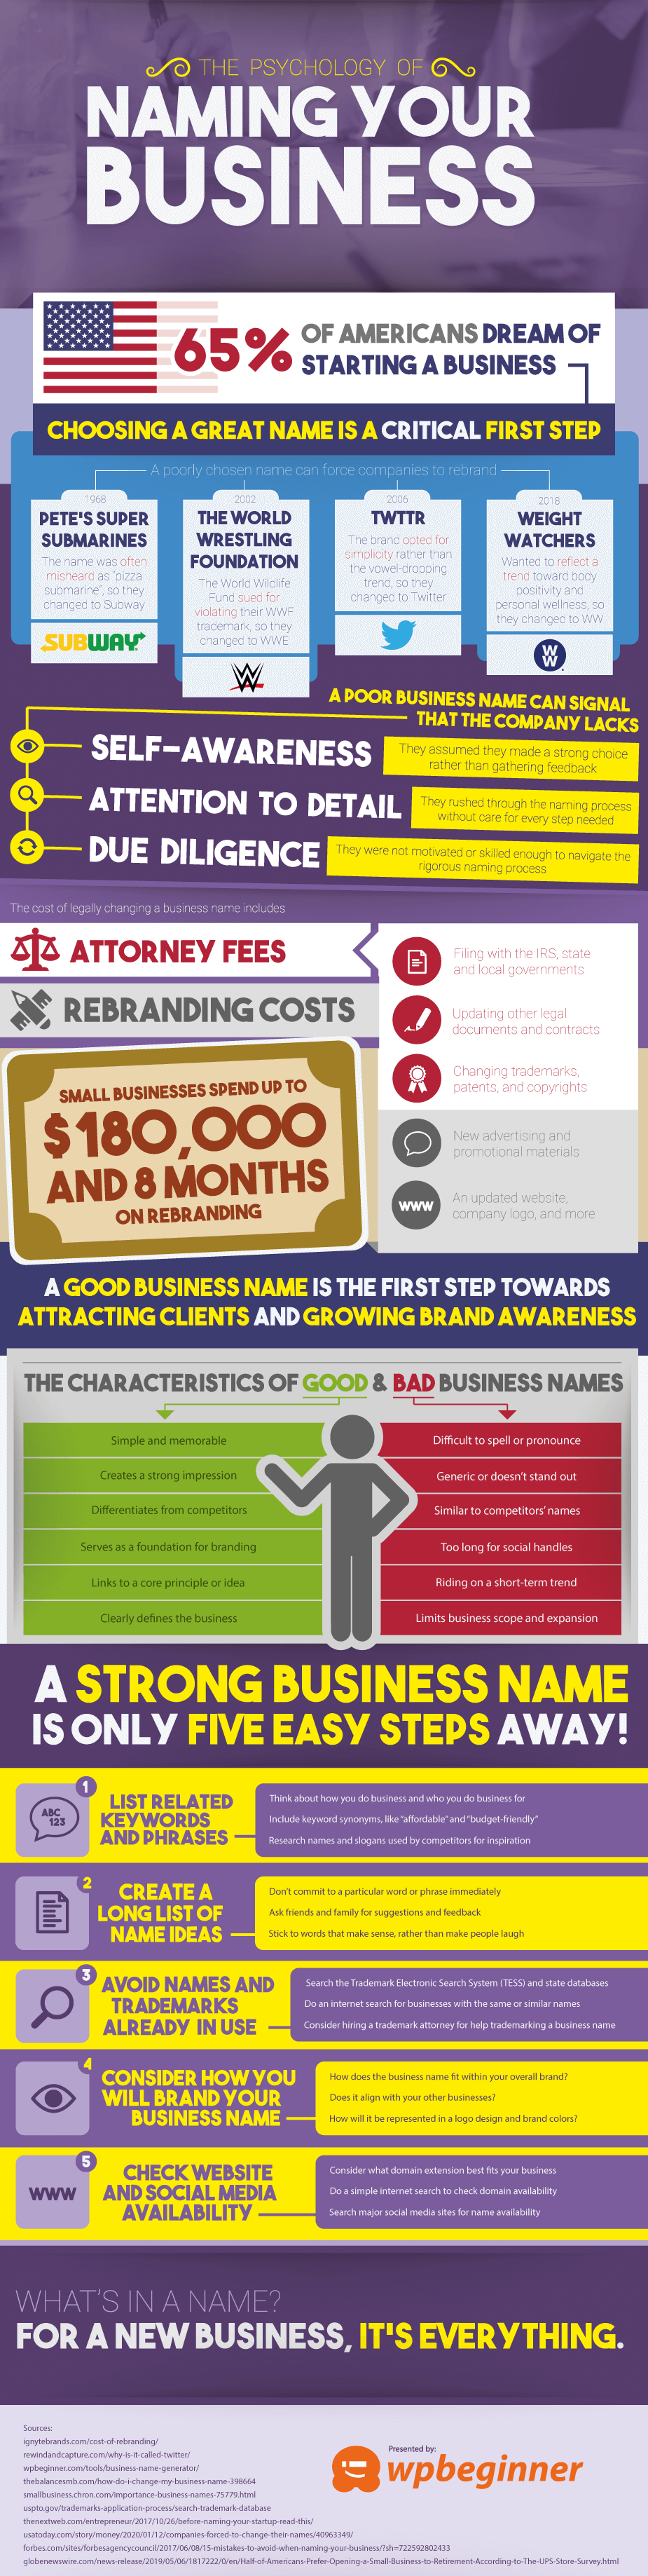 The Psychology of Naming Your Business - Infographic